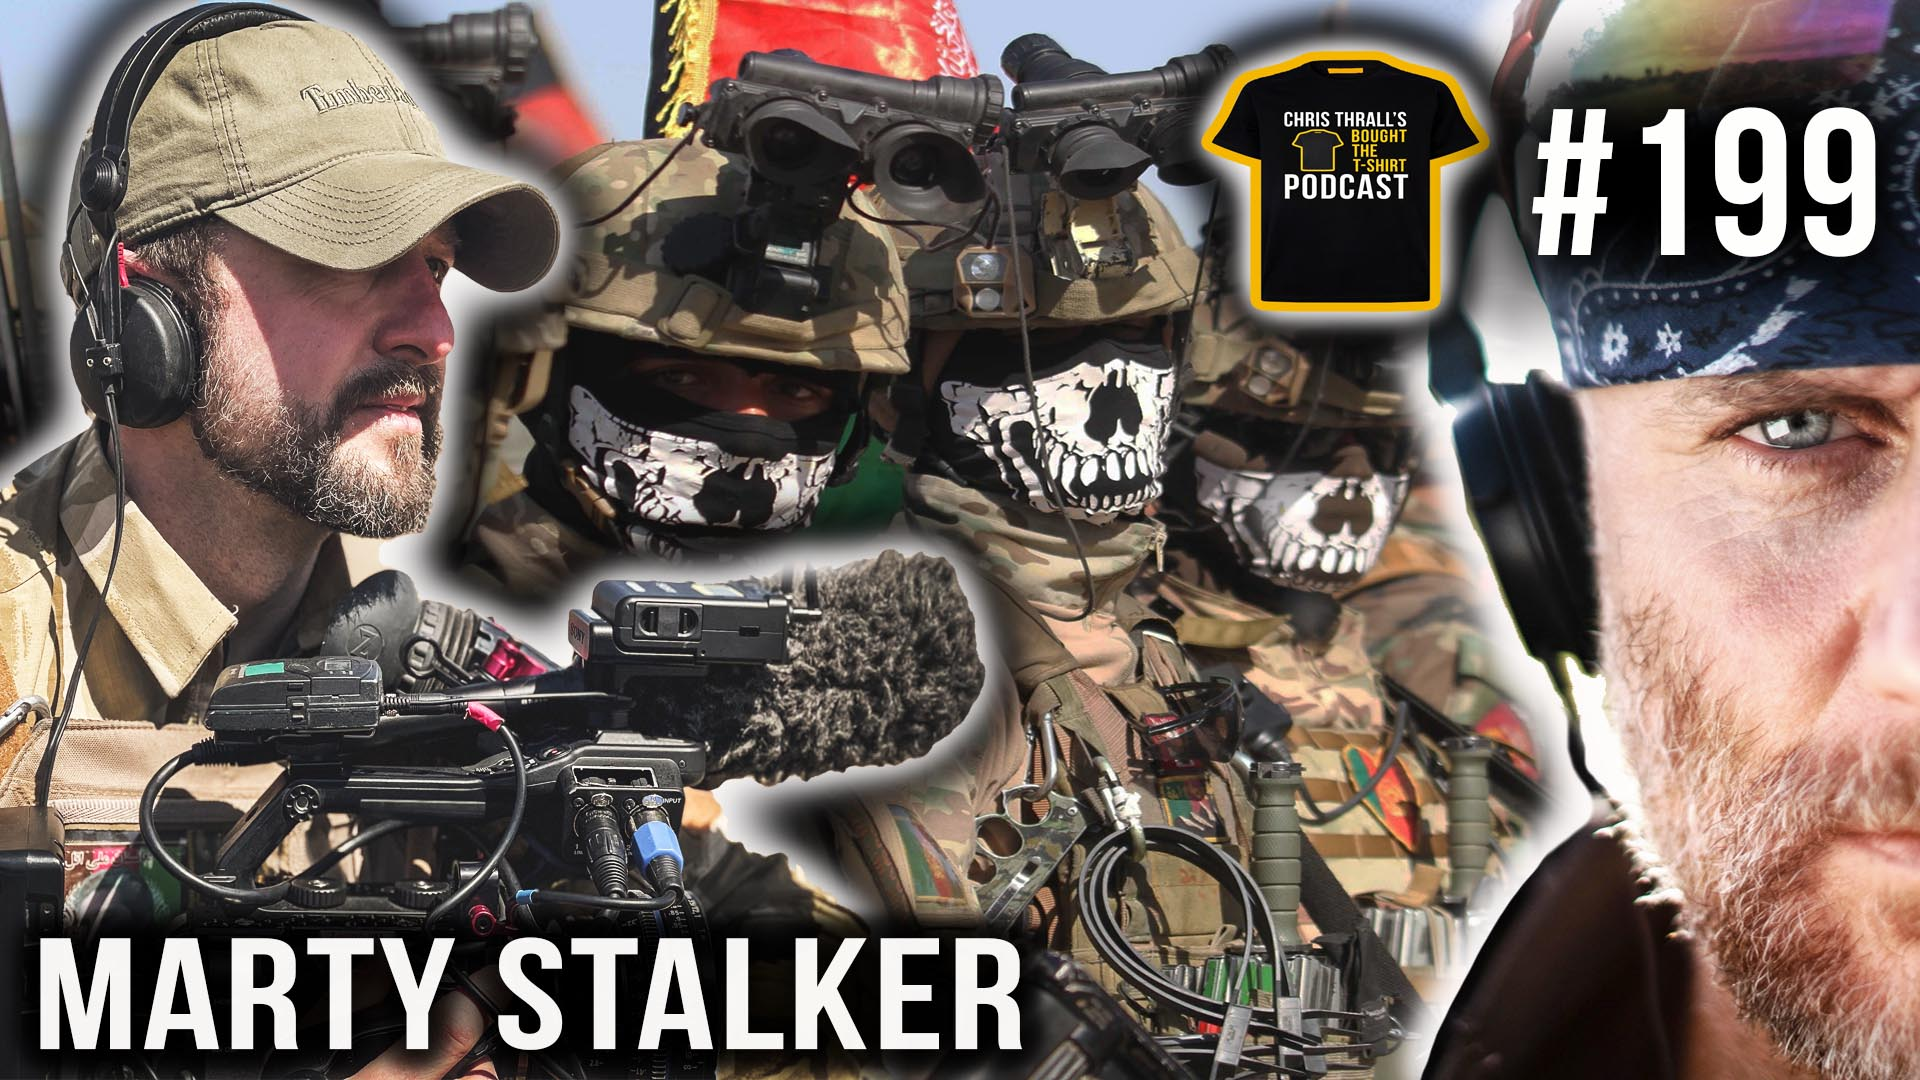 Mission FAILED Afghanistan | Marty Stalker | Podcast #199